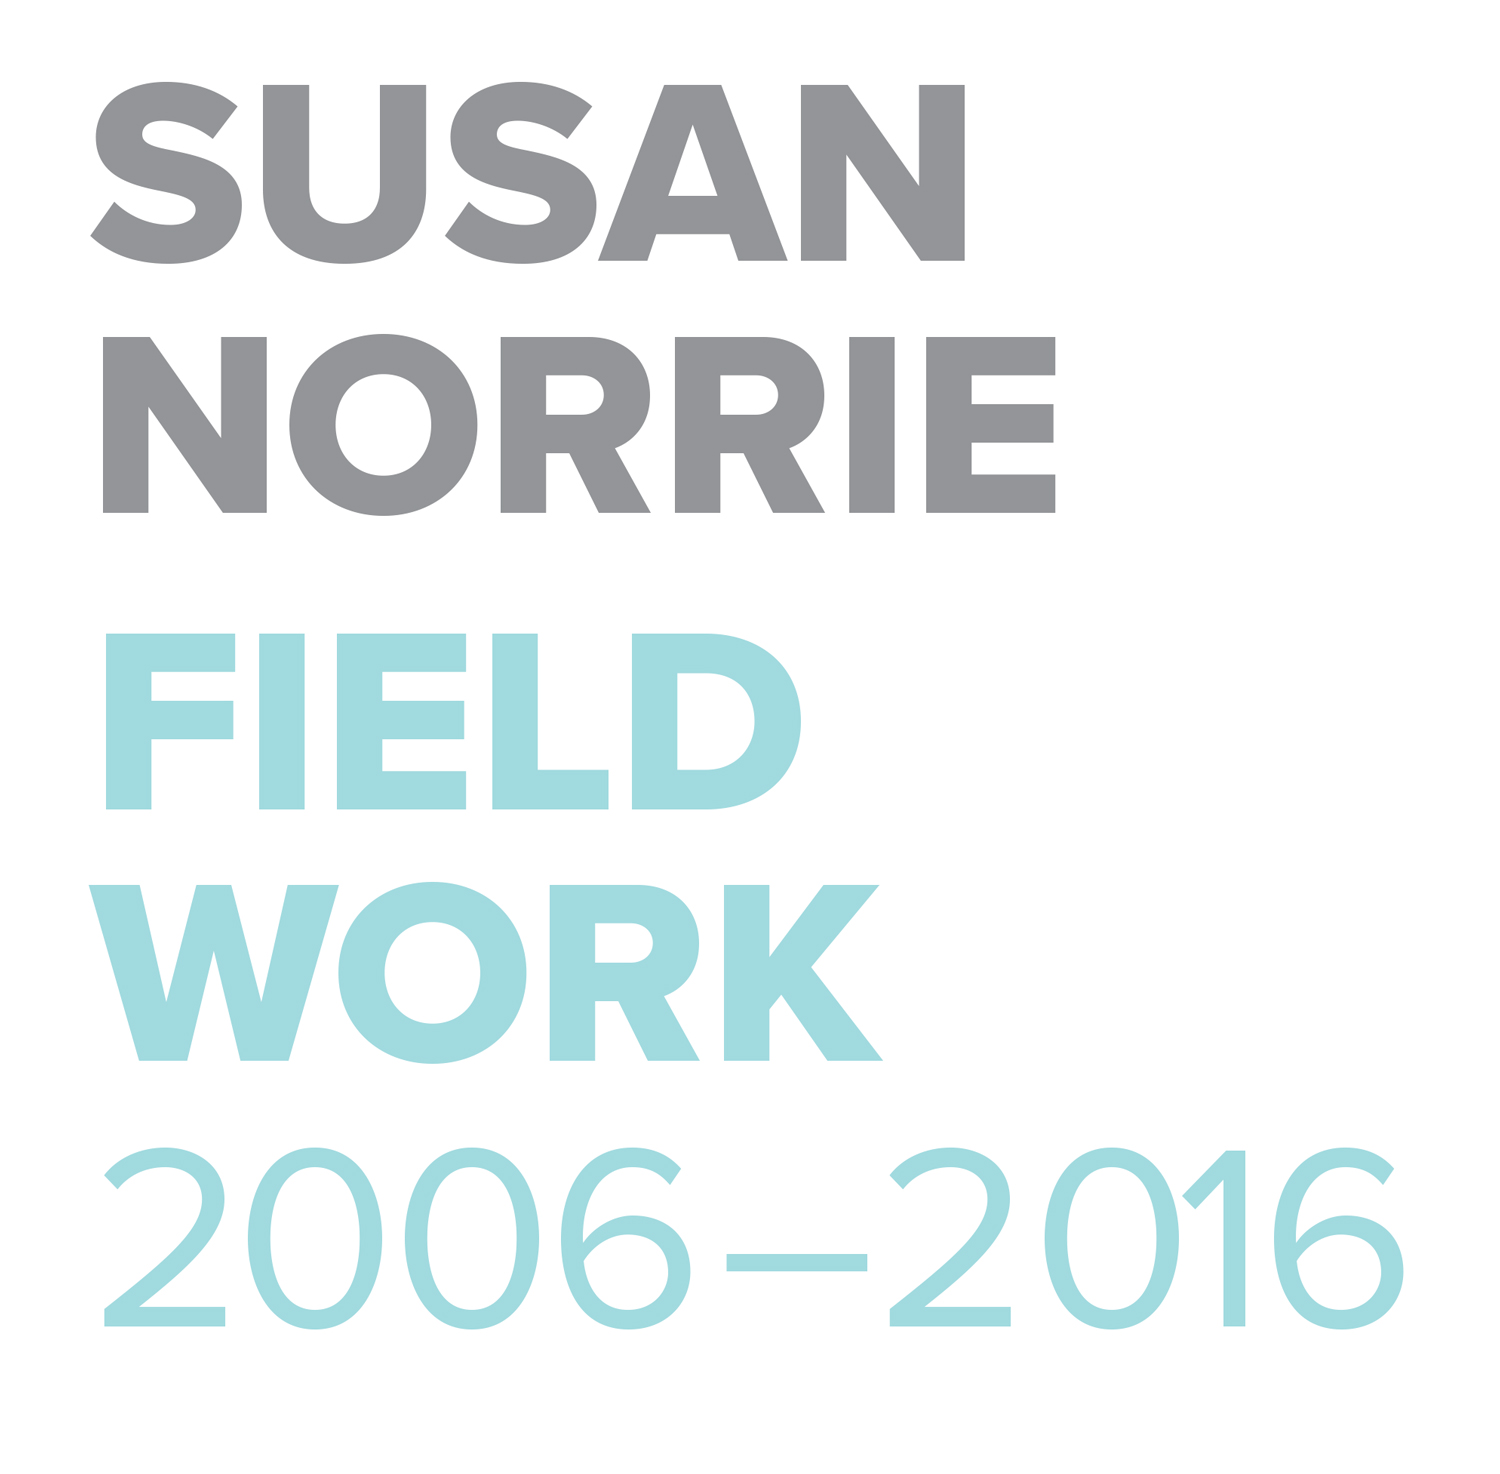 susan_norrie_text_art-1